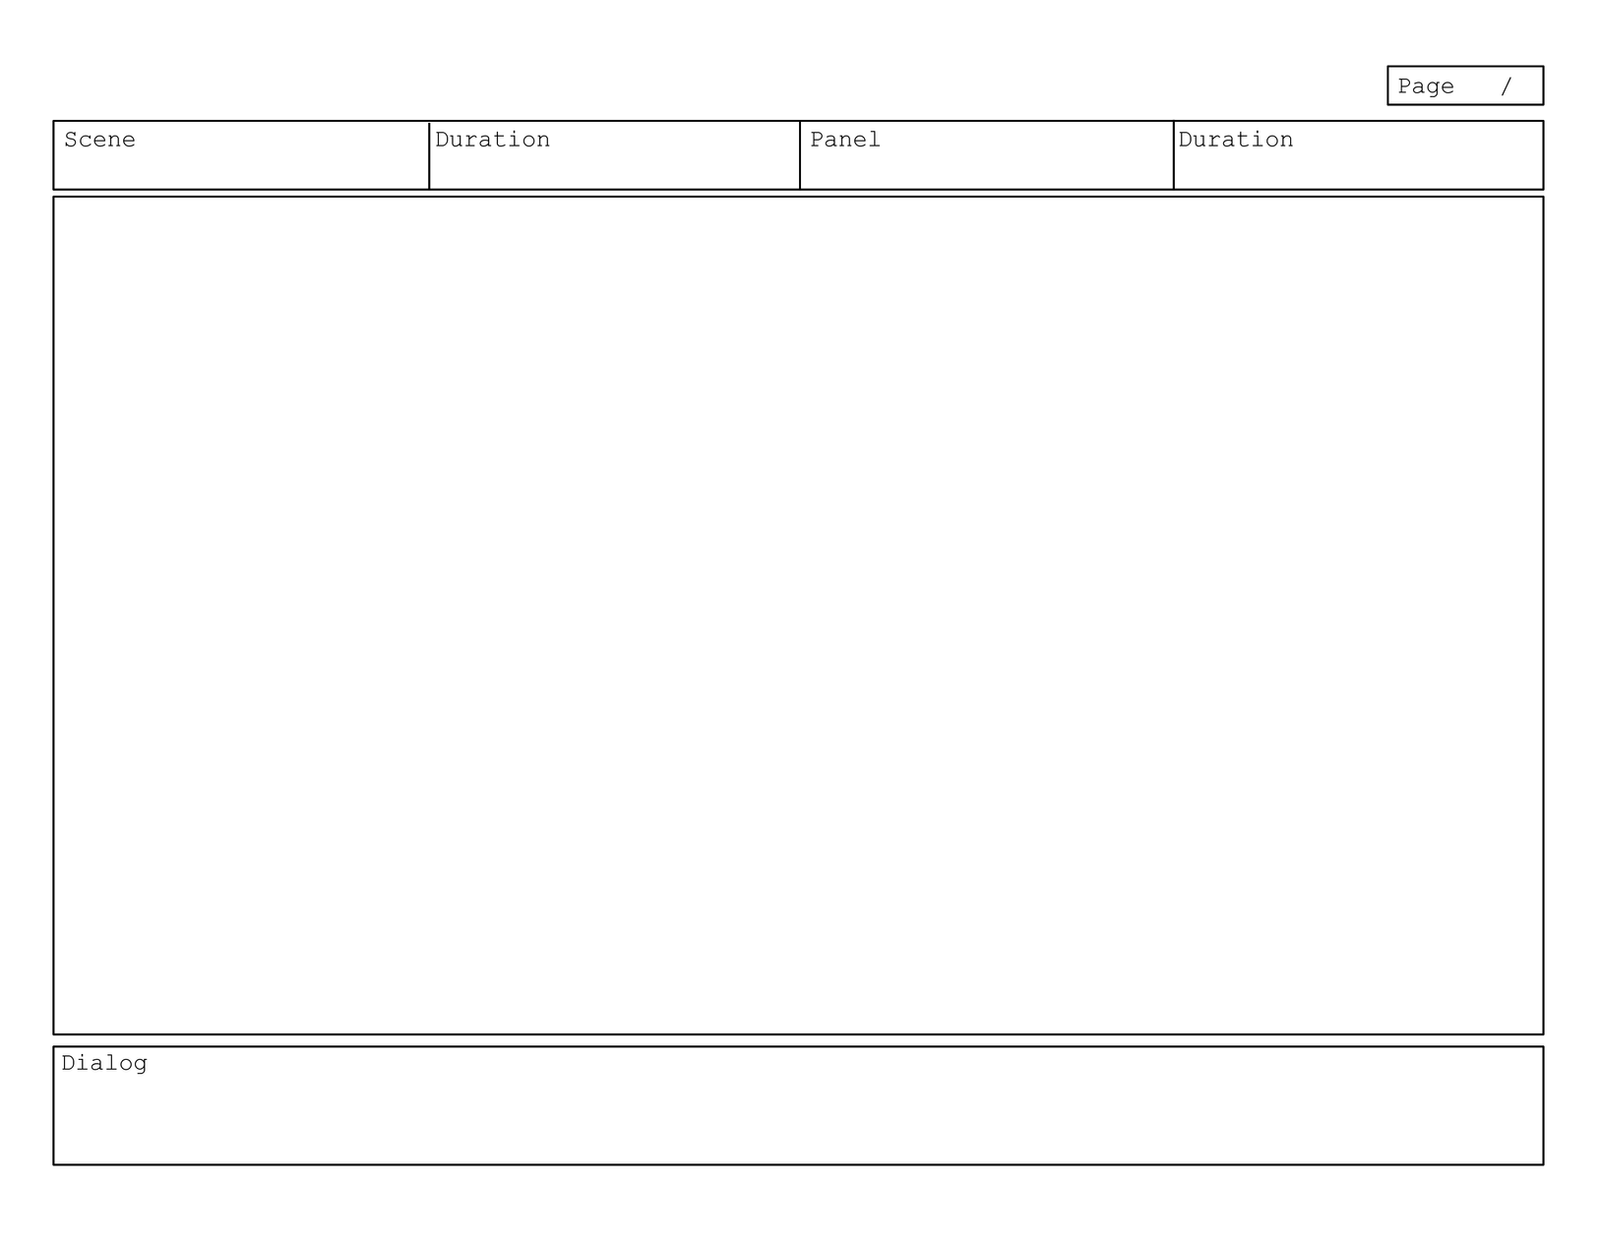 Magnificent Illustrator Storyboard Template Images - The Best ...